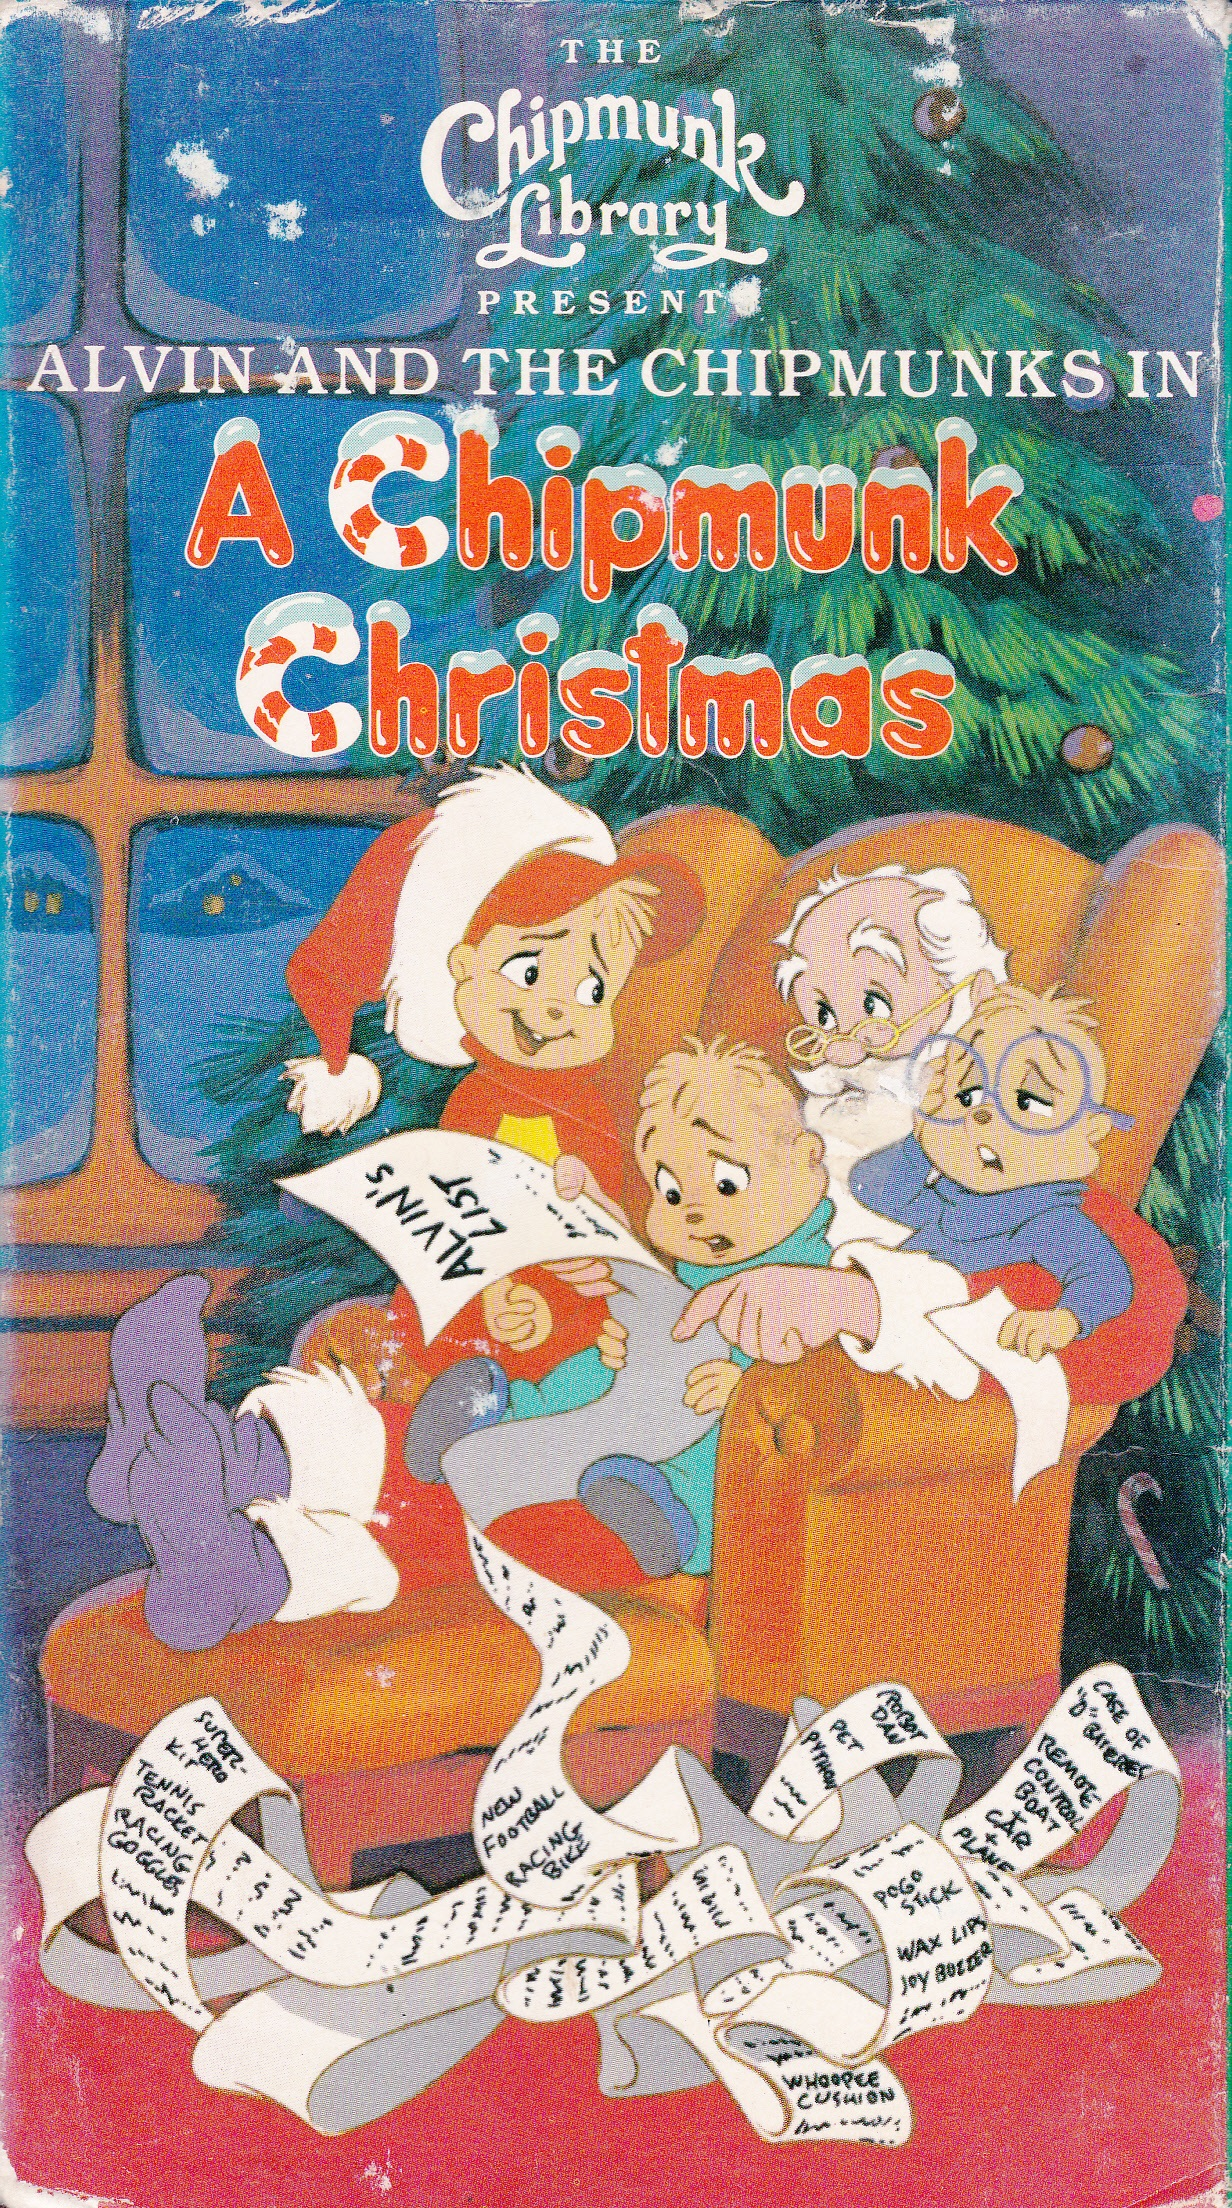 Alvin And The Chipmunks Christmas.A Chipmunk Christmas Vhs Alvin And The Chipmunks Wiki